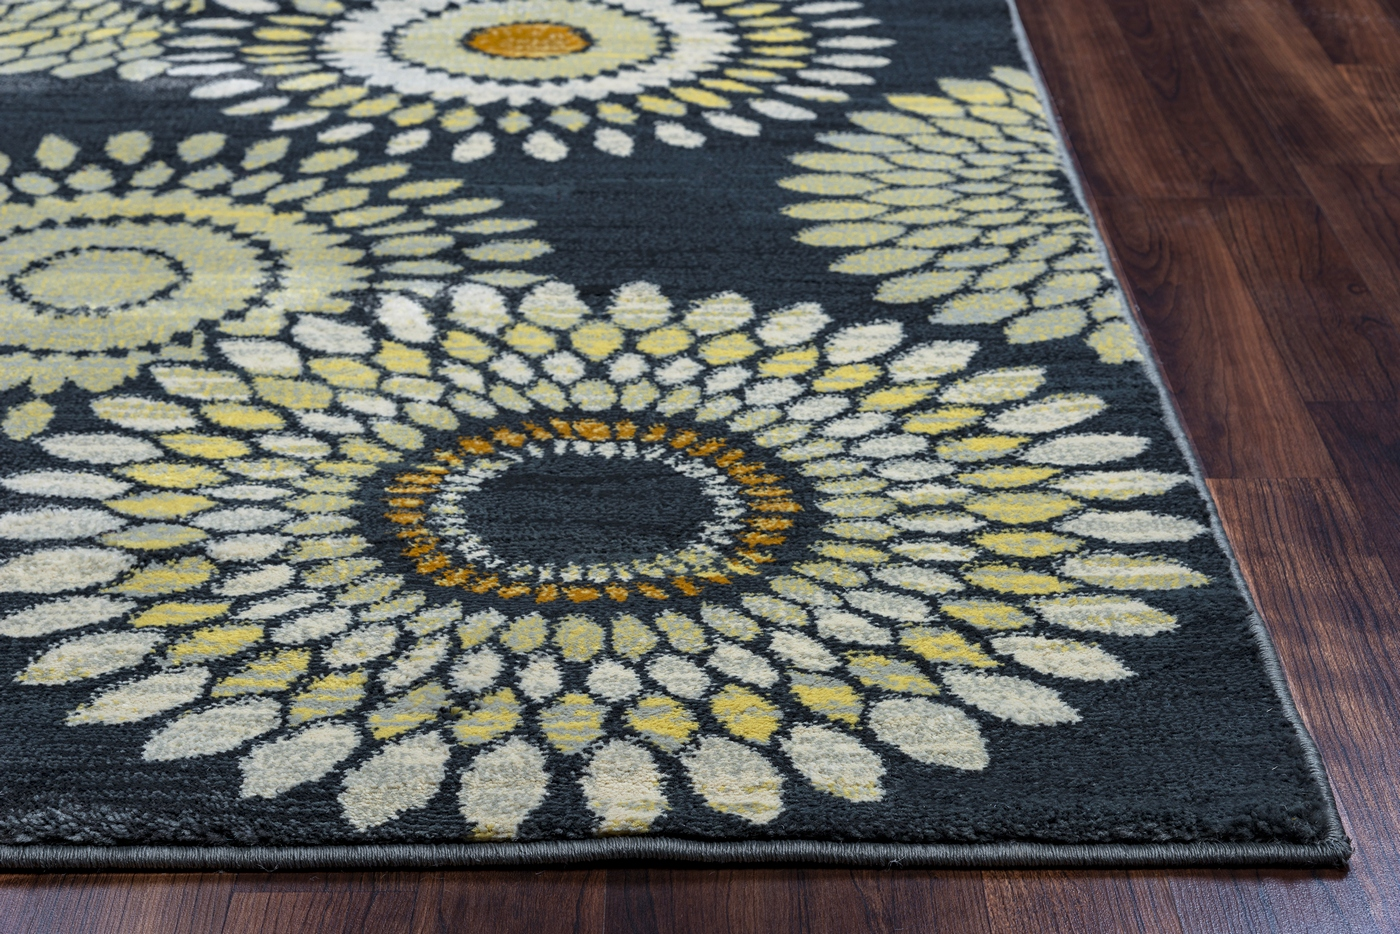 Sorrento Sunflower Medallion Area Rug In Charcoal Gray Tan